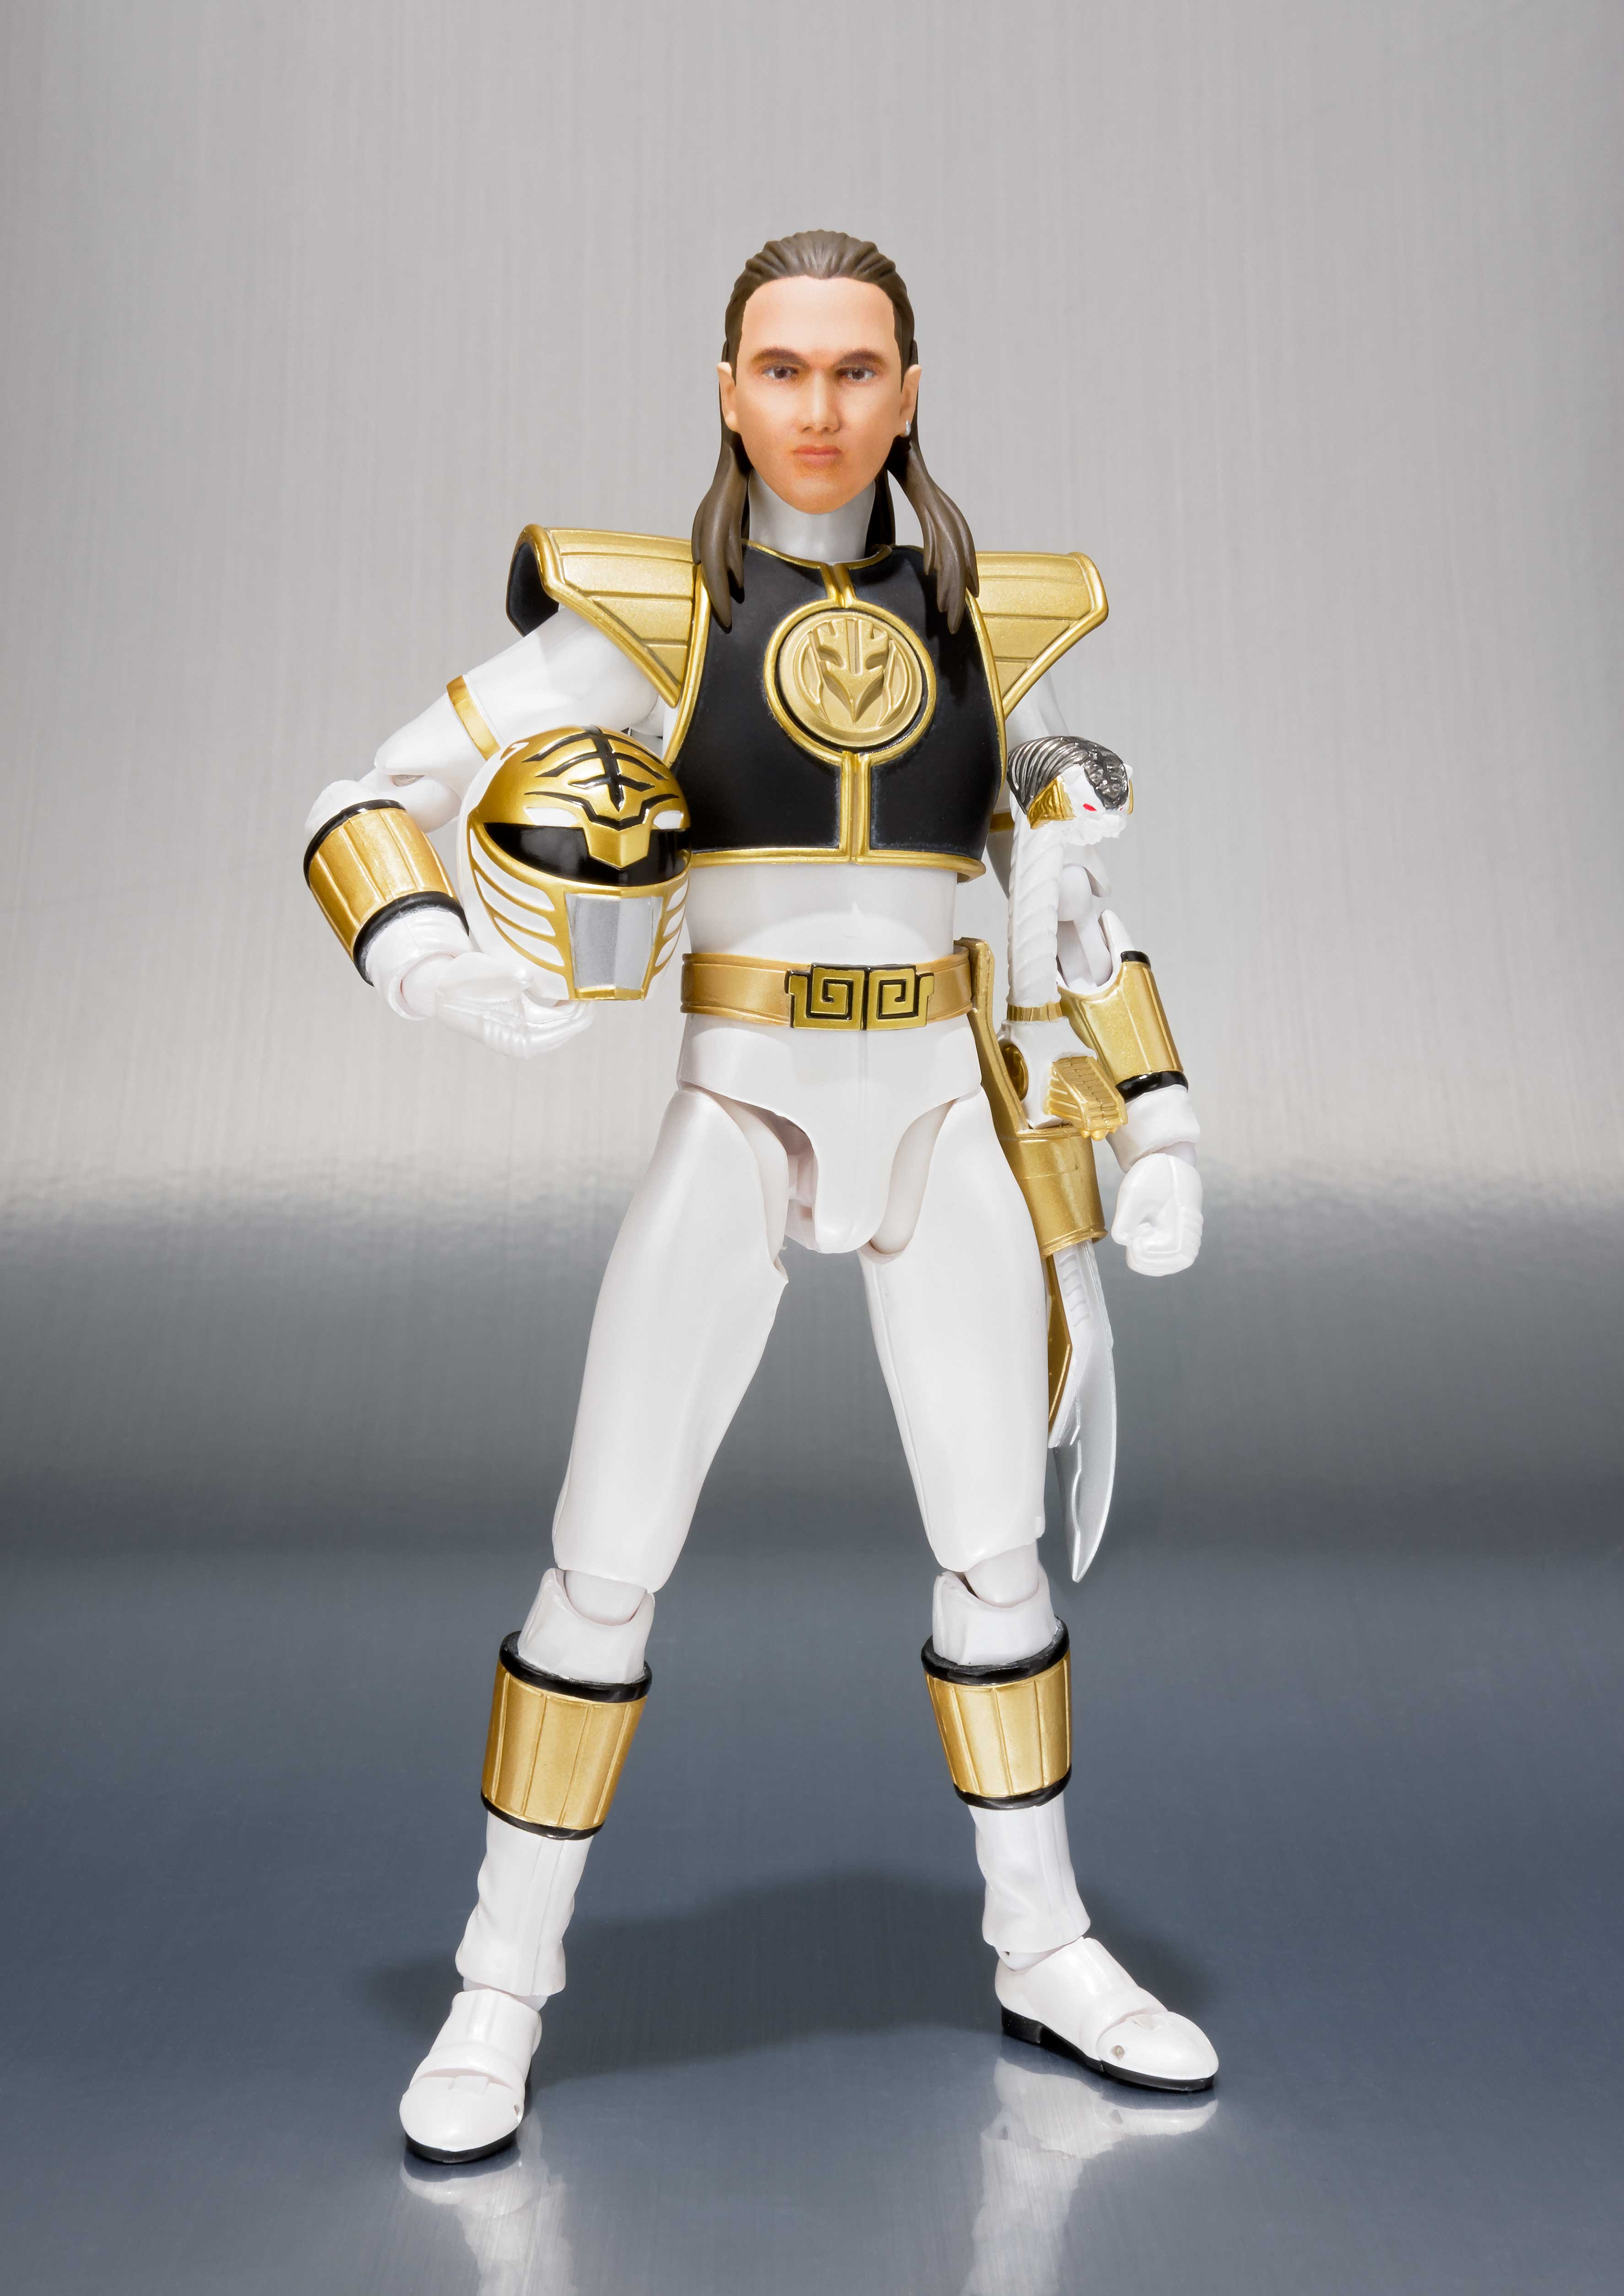 S.H.Figuarts: Mighty Morphin Power Rangers - White Ranger